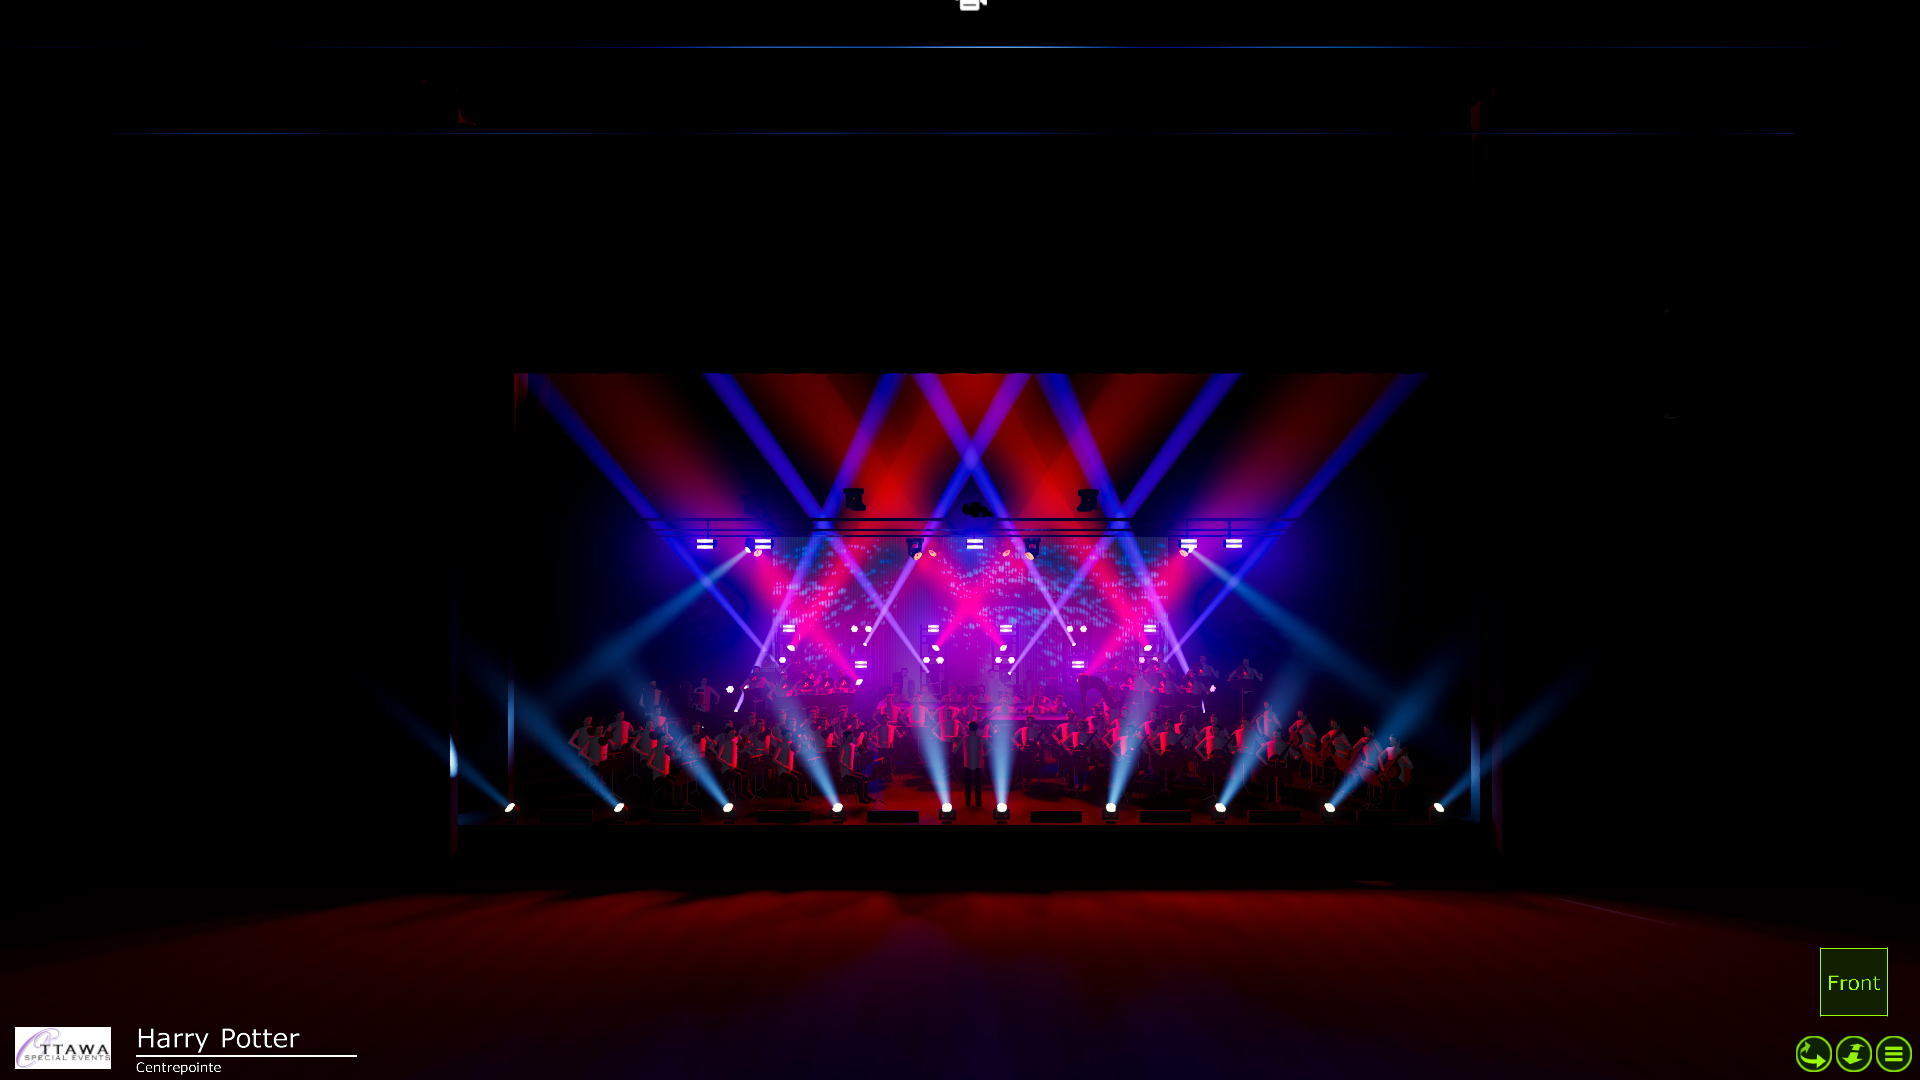 Toronto three dimensional (3D) show, concert and event rendering designers